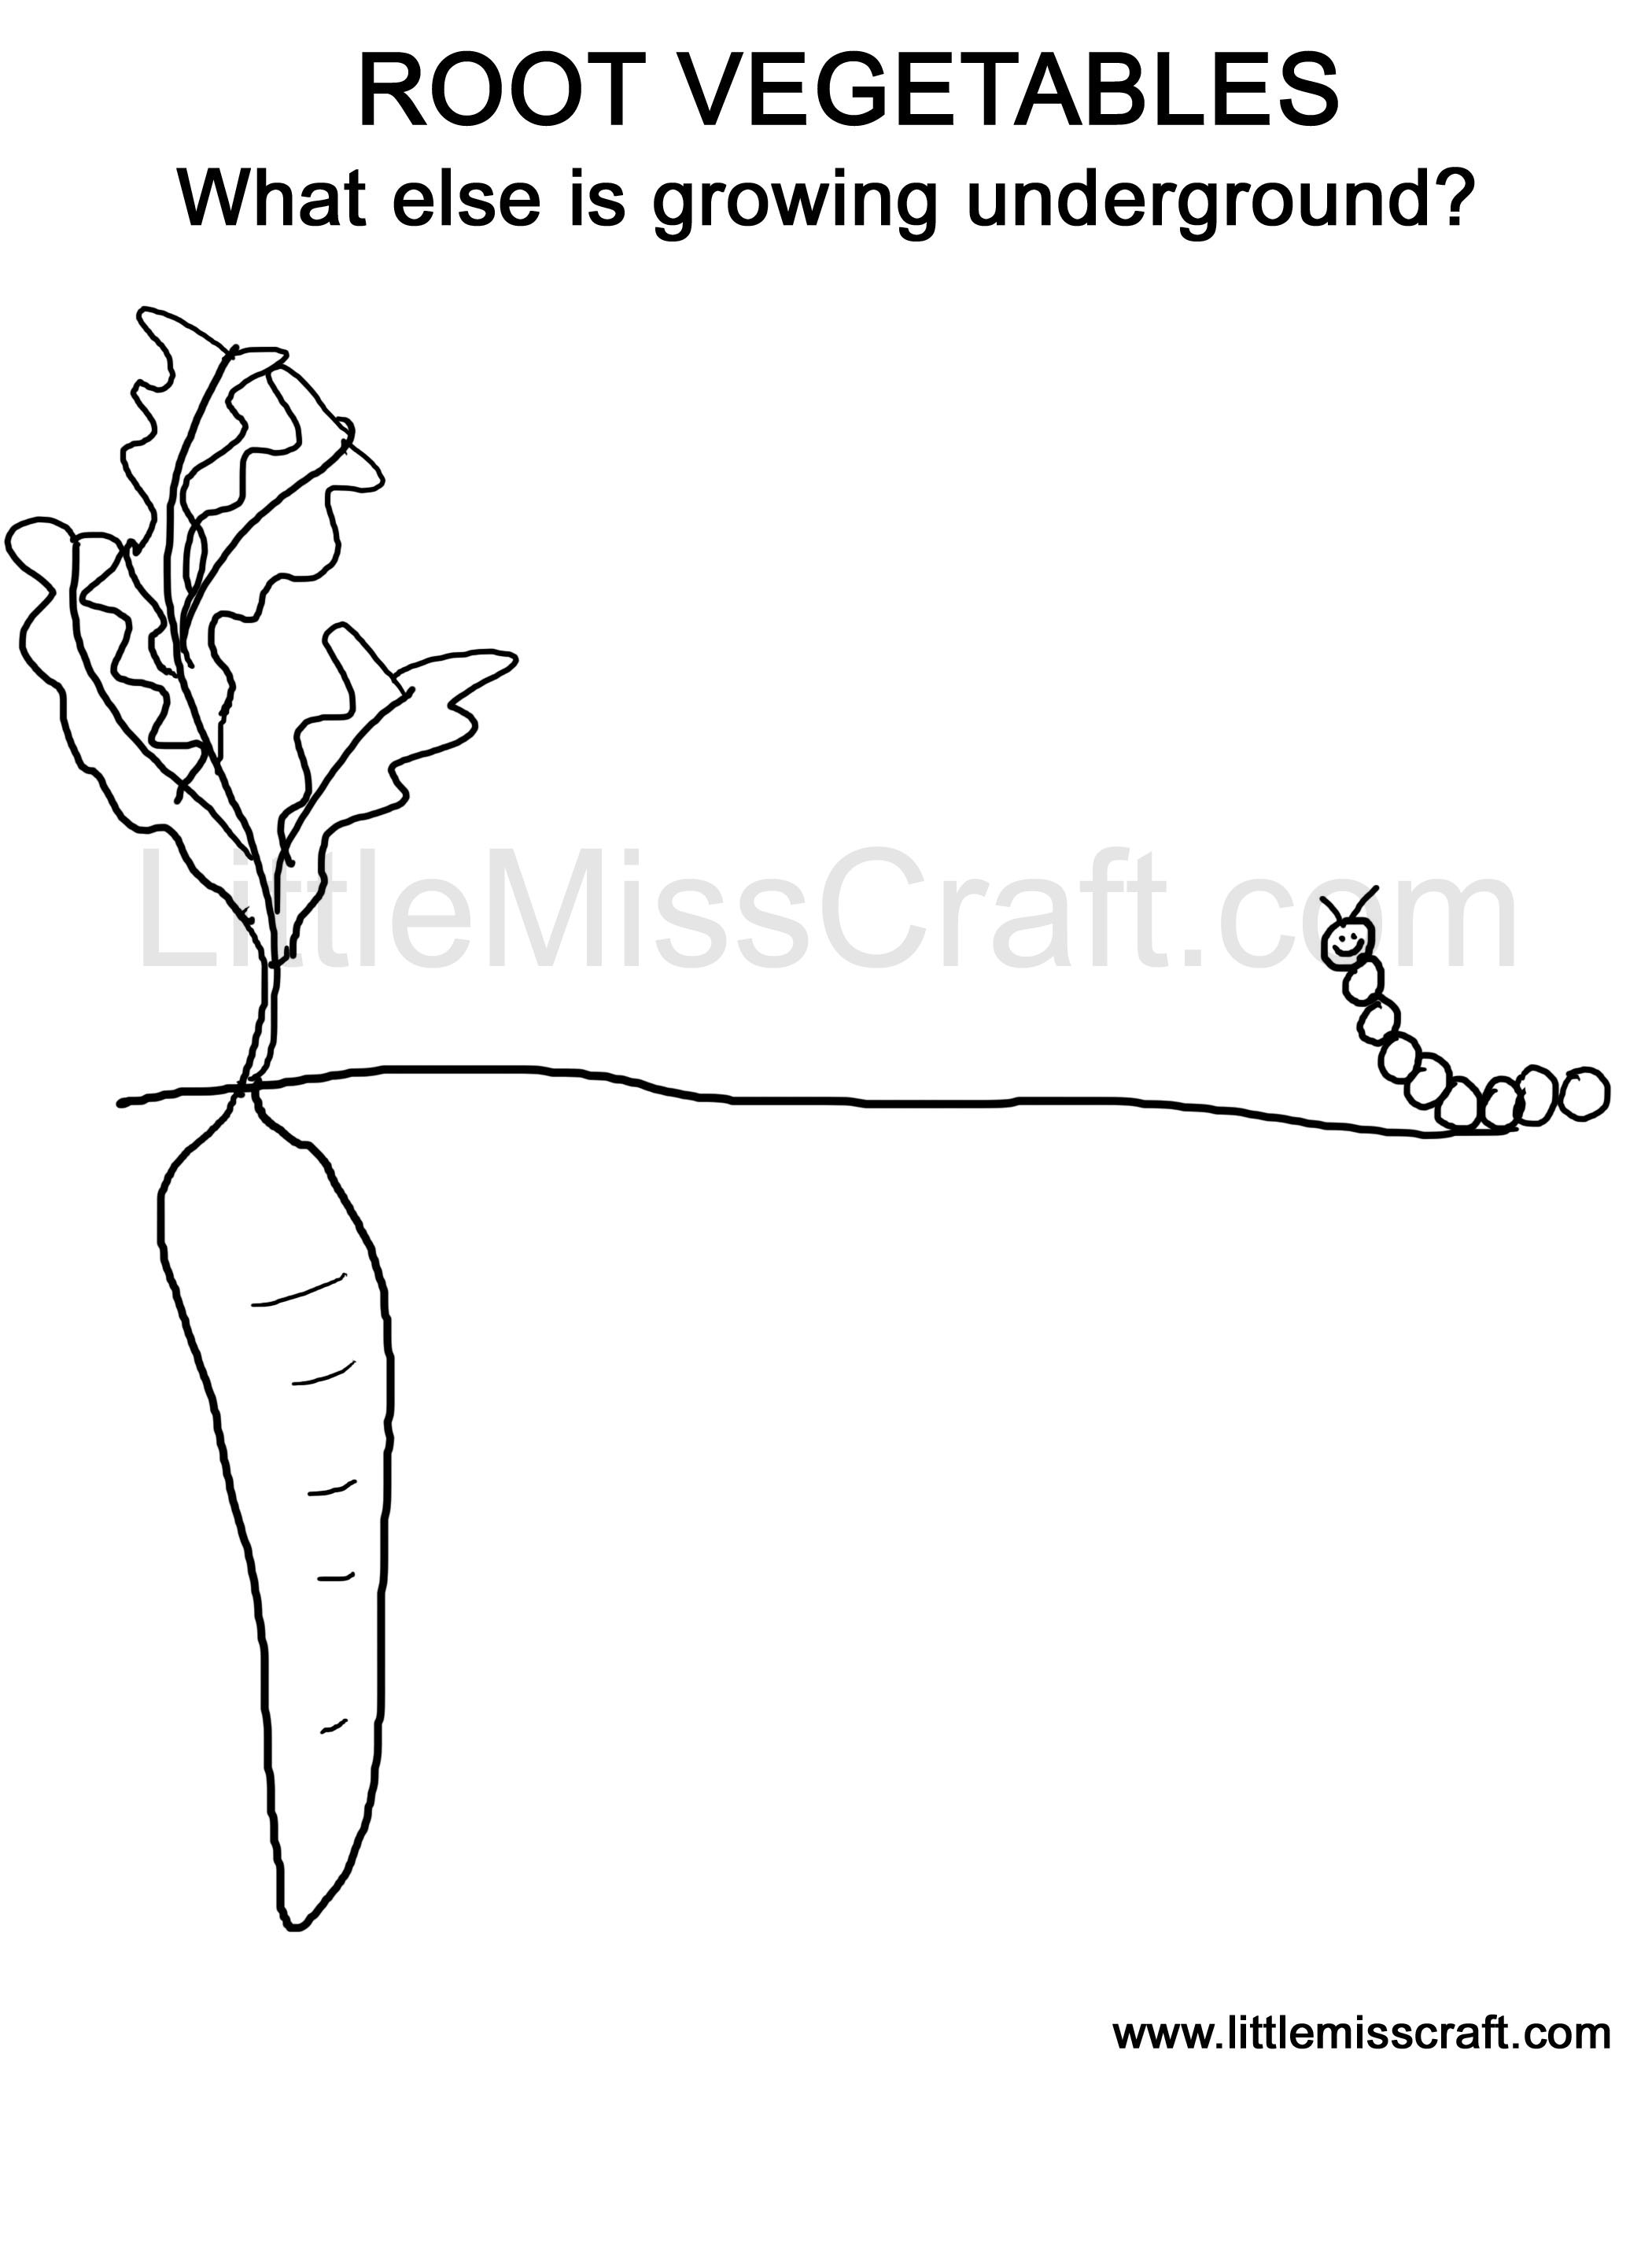 Crafts - Growing Root Vegetables Doodle Coloring Page